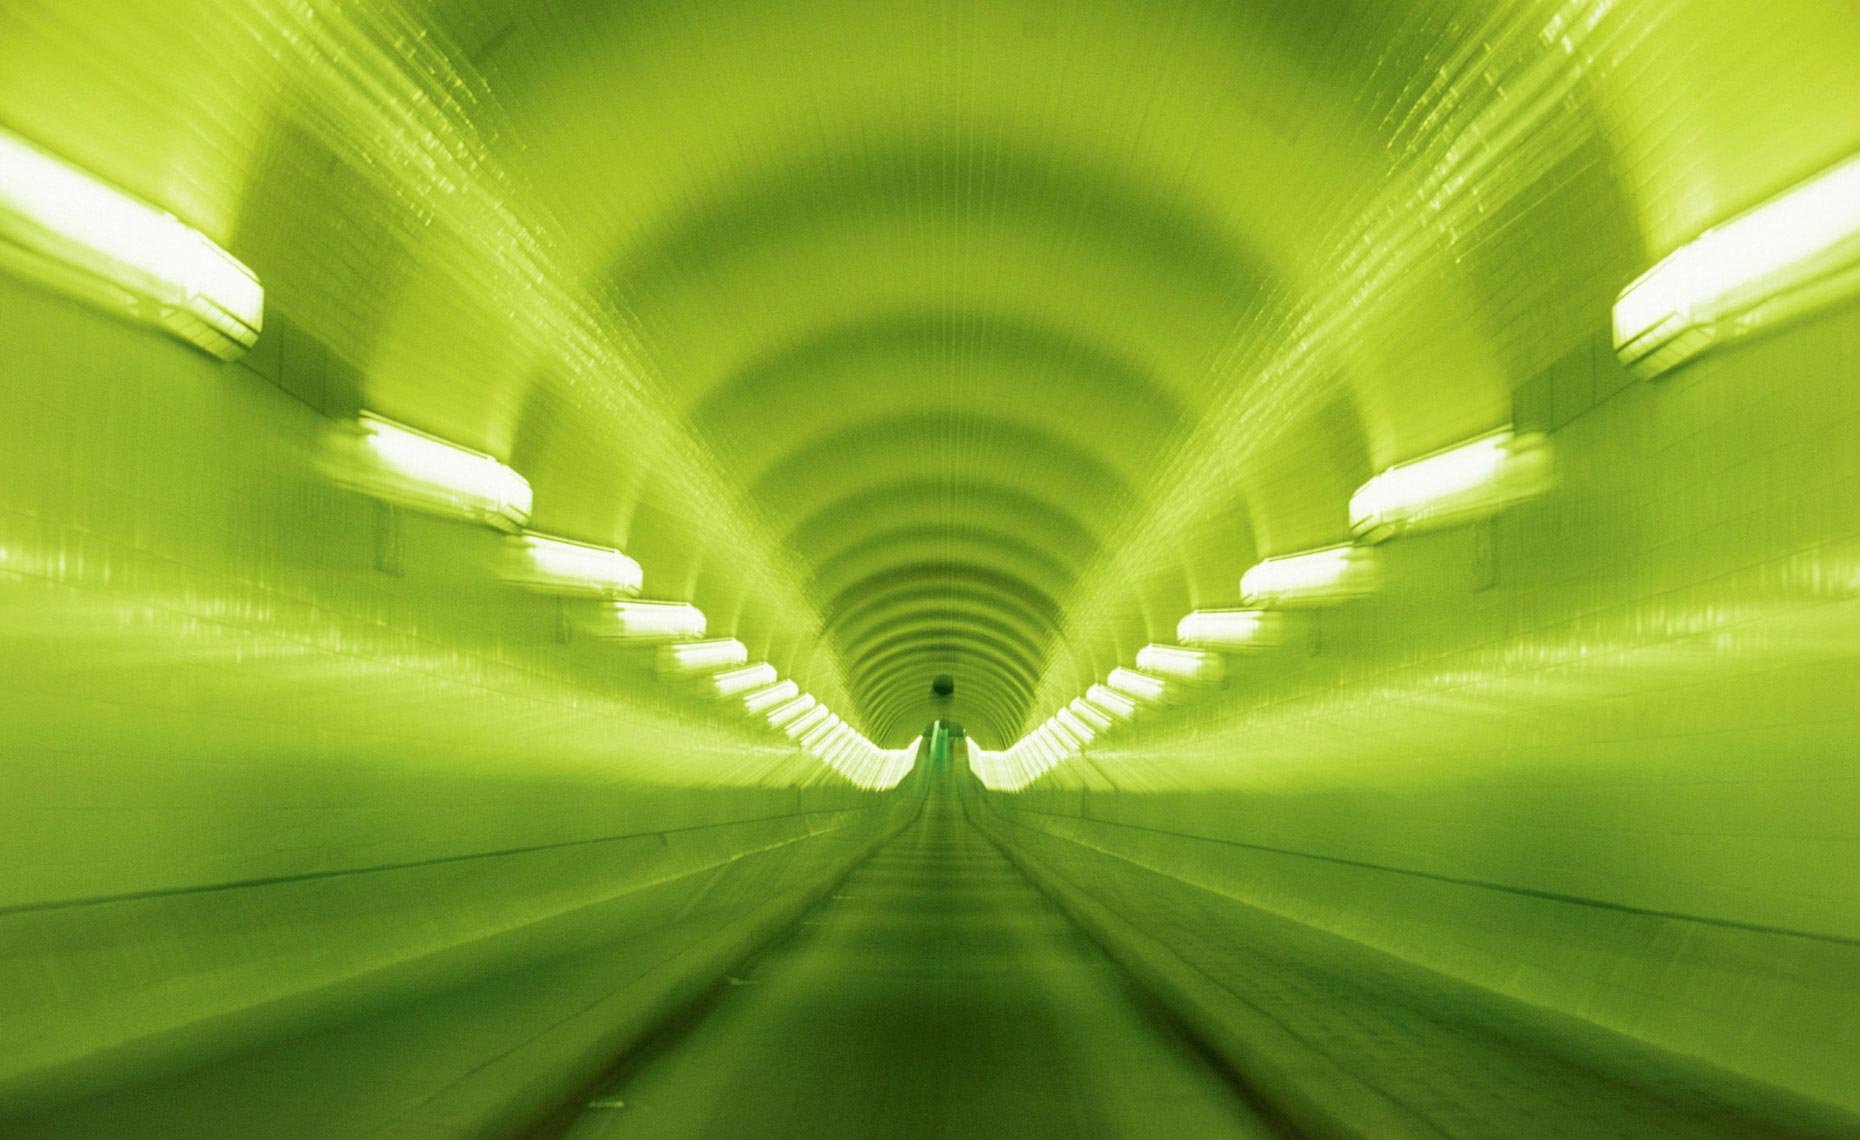 990410_Hamburg_Elbtunnel_02_Core.jpg